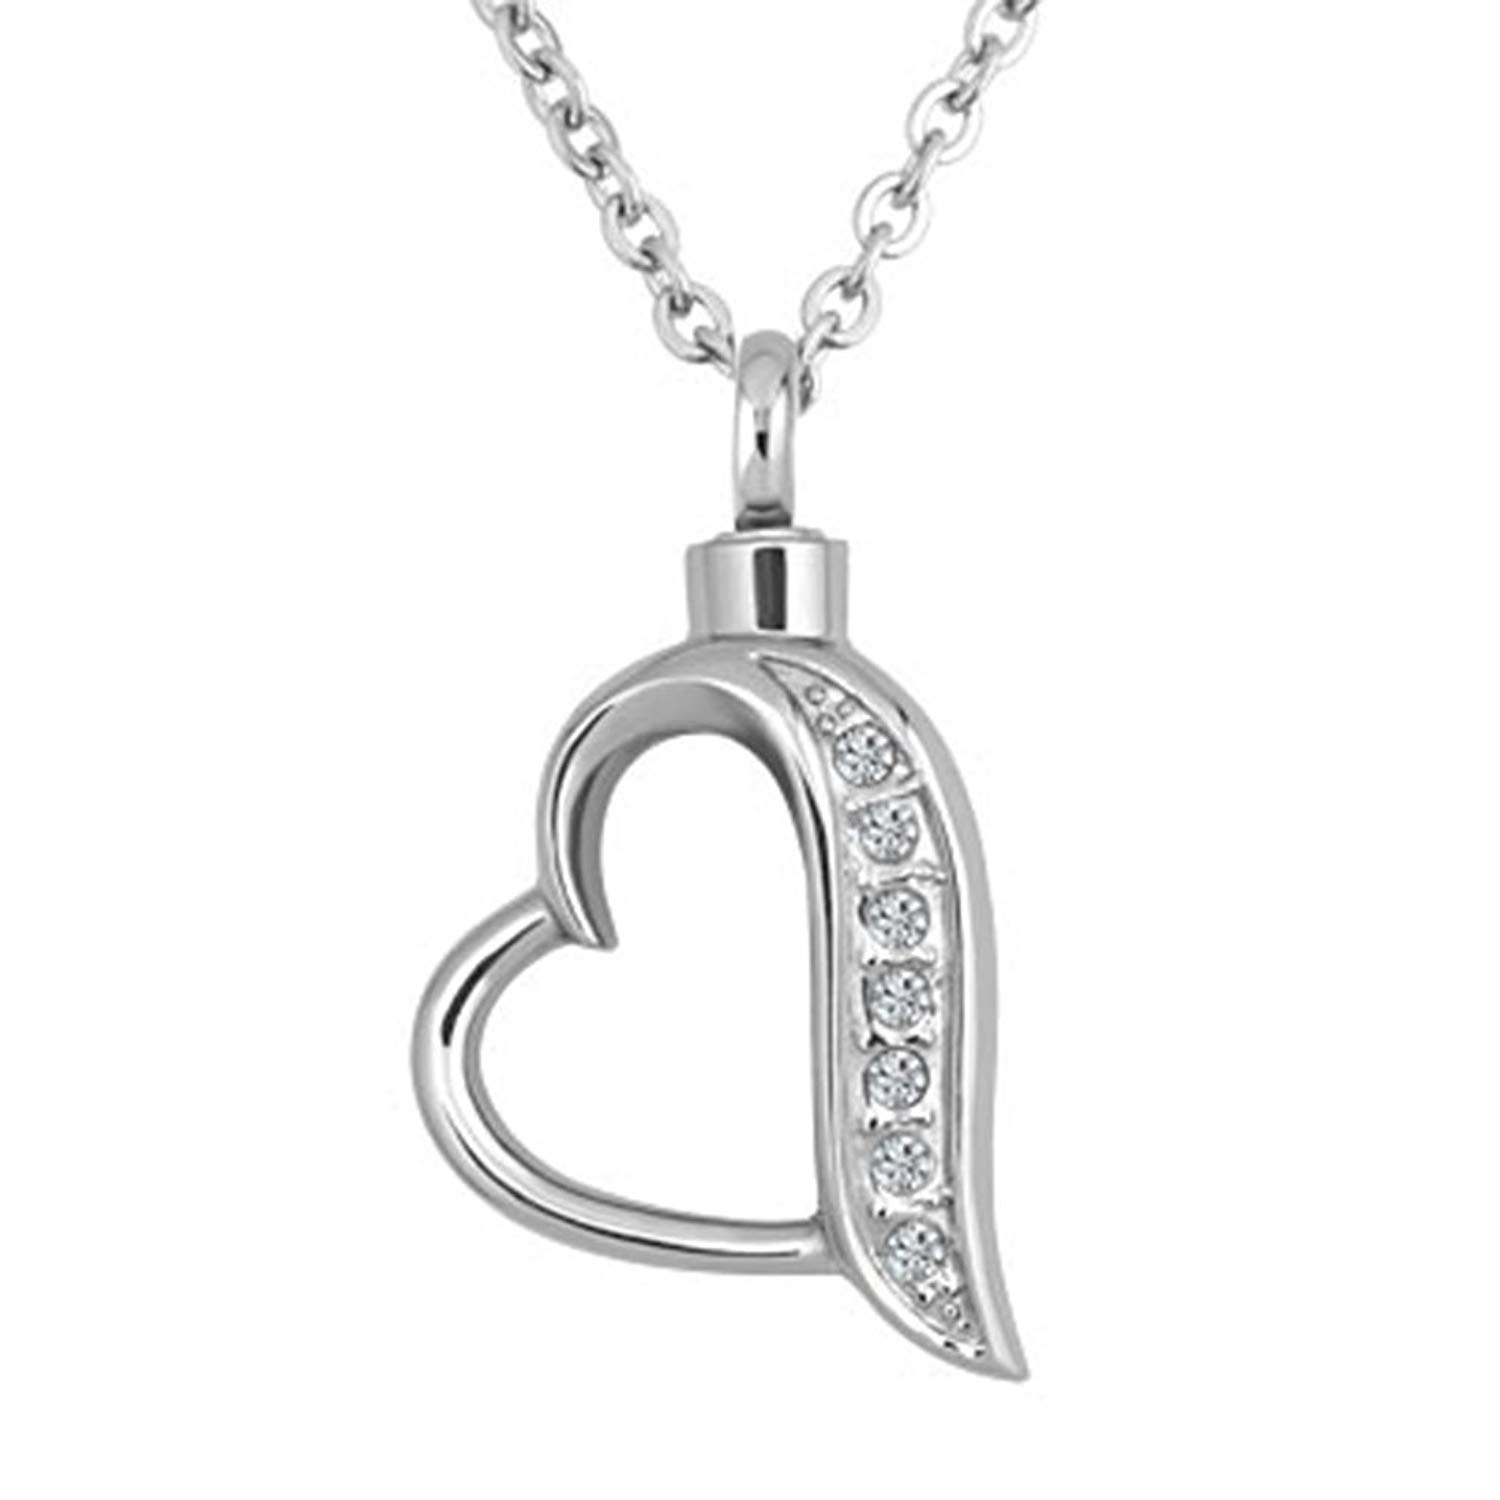 8d331b718 Get Quotations · Jesse Ortega Urn Necklace of Ashes Cremation Jewelry Heart  Love Crystal Keepsake Memorial Stainless Steel Necklace